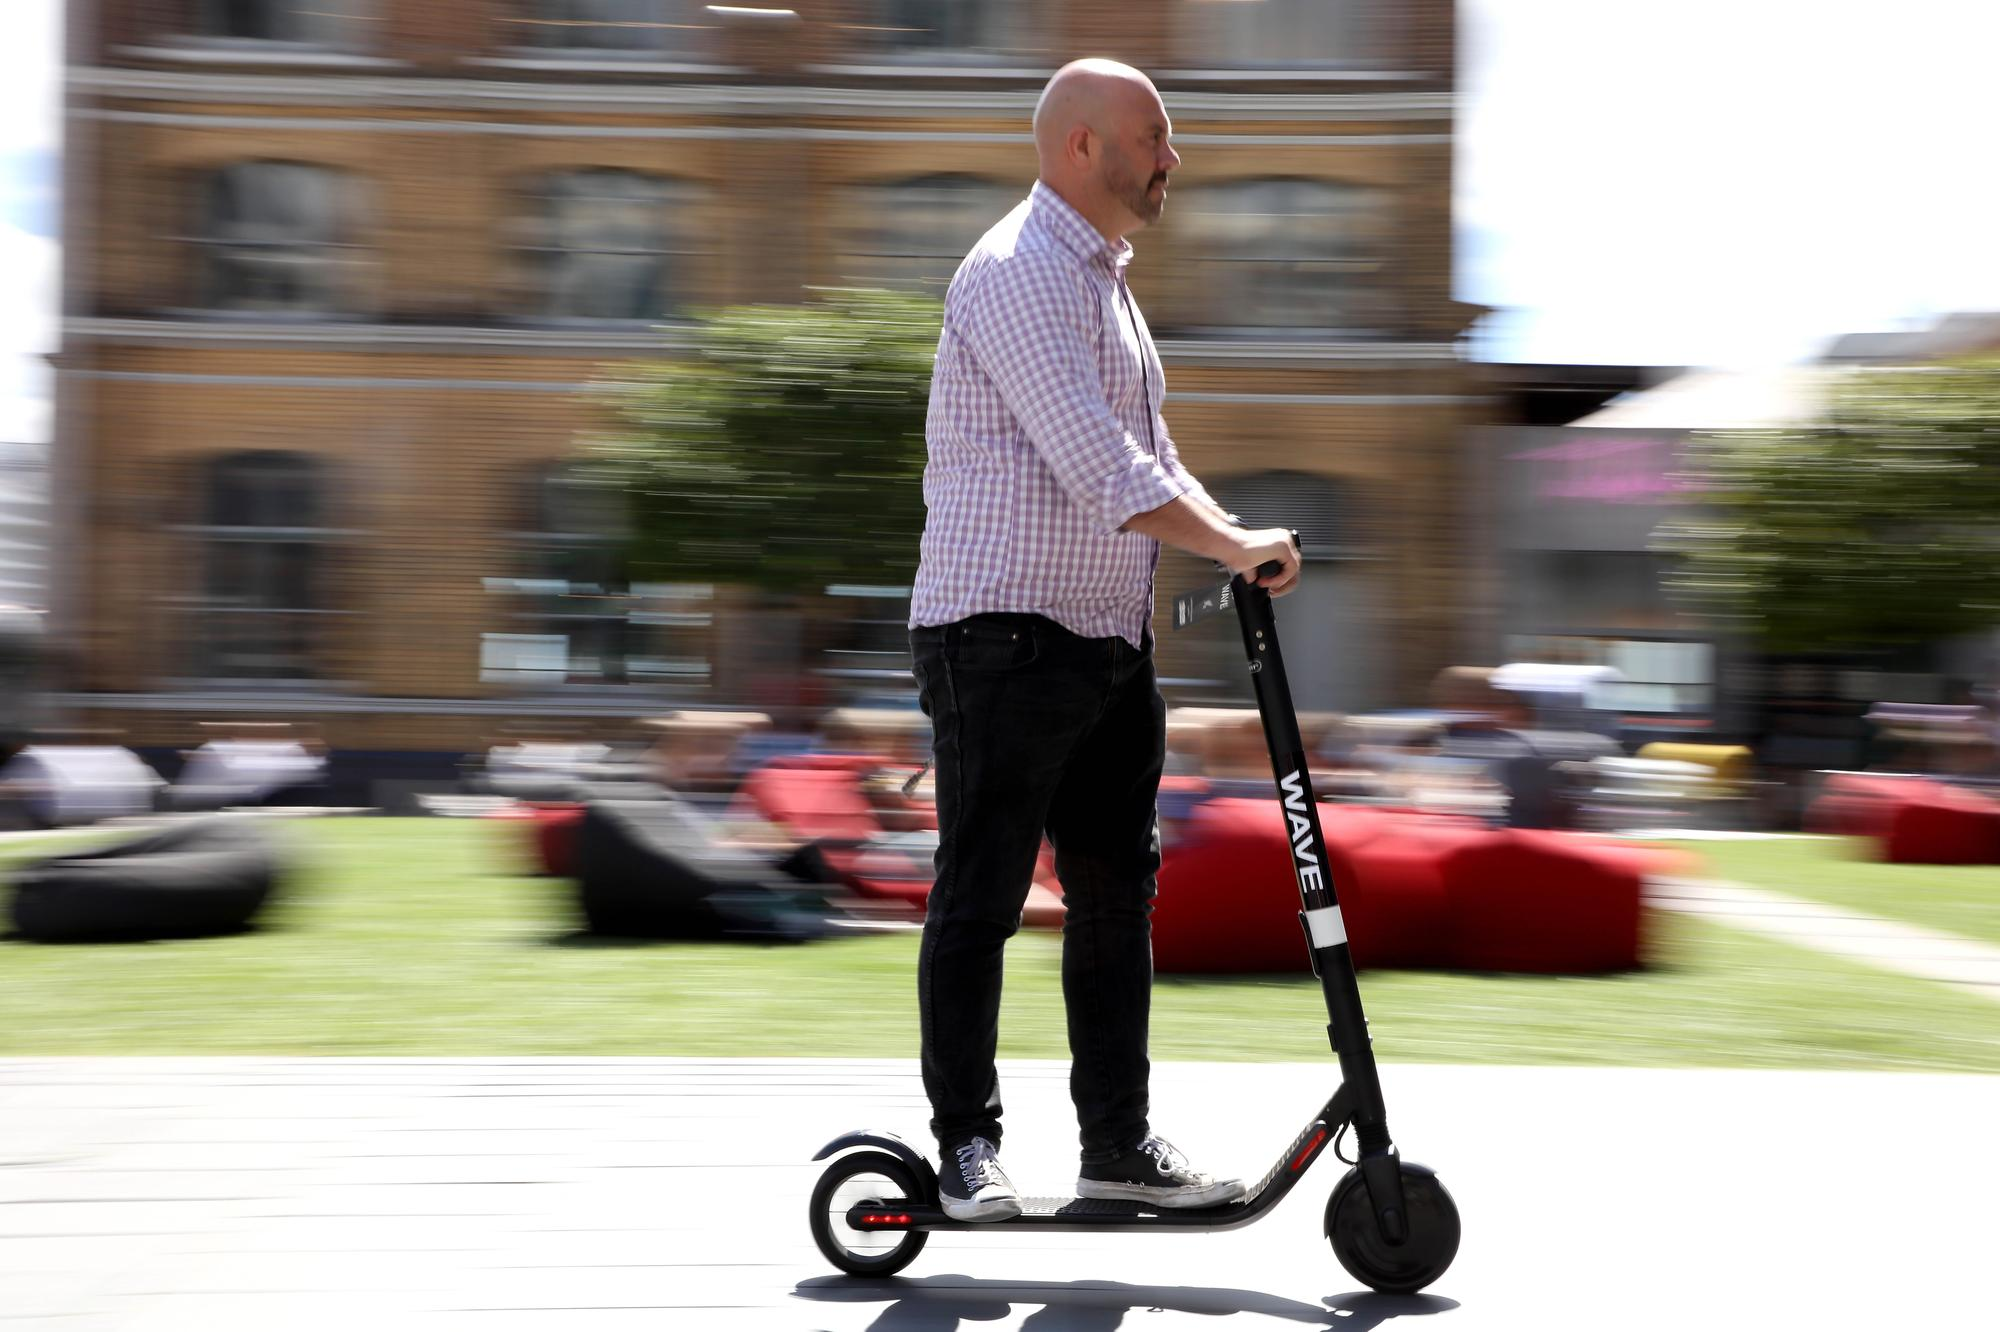 How Dominic West has just killed the e-scooter, the future and my dreams – Aidan Smith